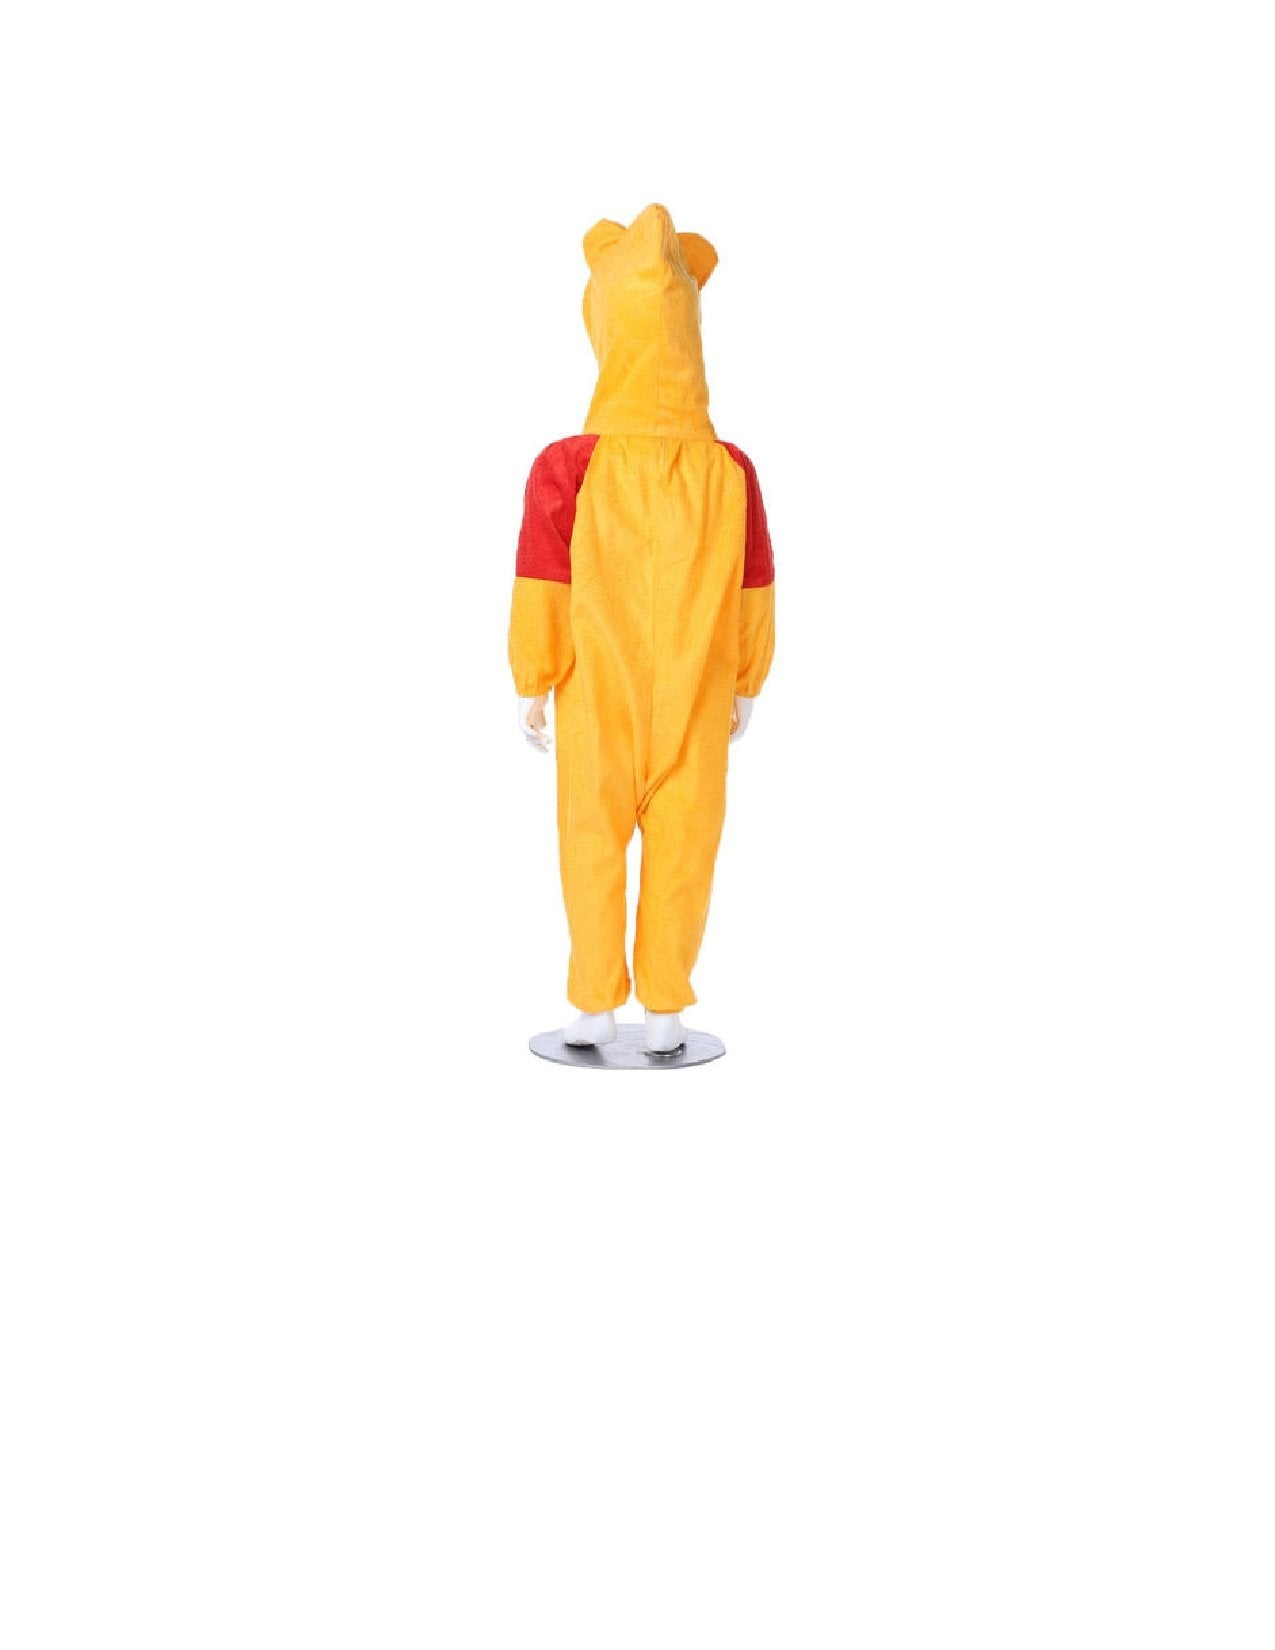 Cartoon Character Winnie the Pooh  costume